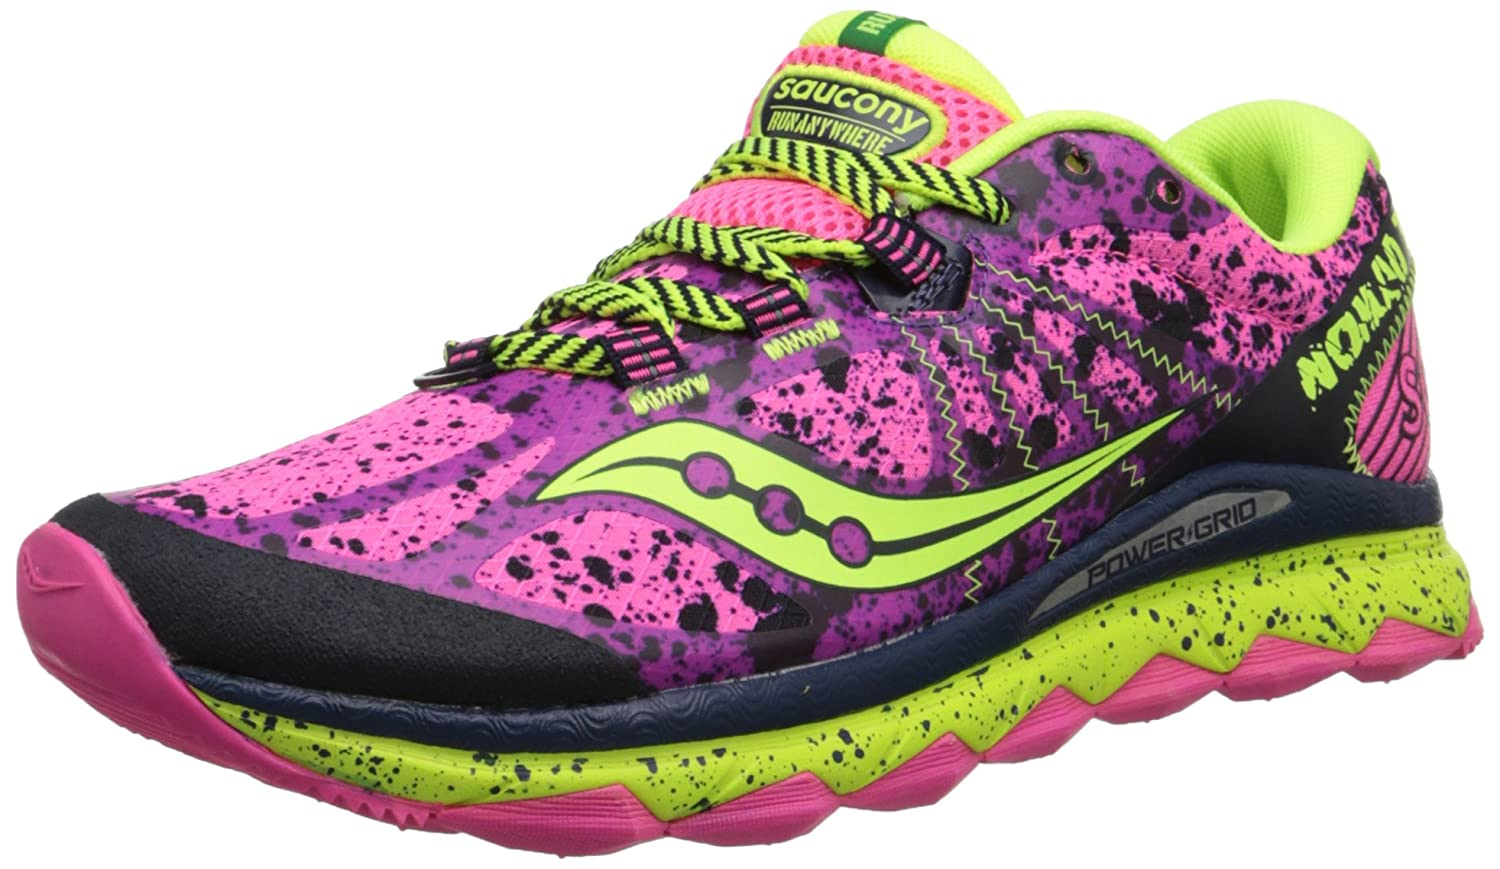 Saucony Women's Nomad TR Trail Running Shoe B00PJ8TRUW 7.5 B(M) US|Pink/Purple